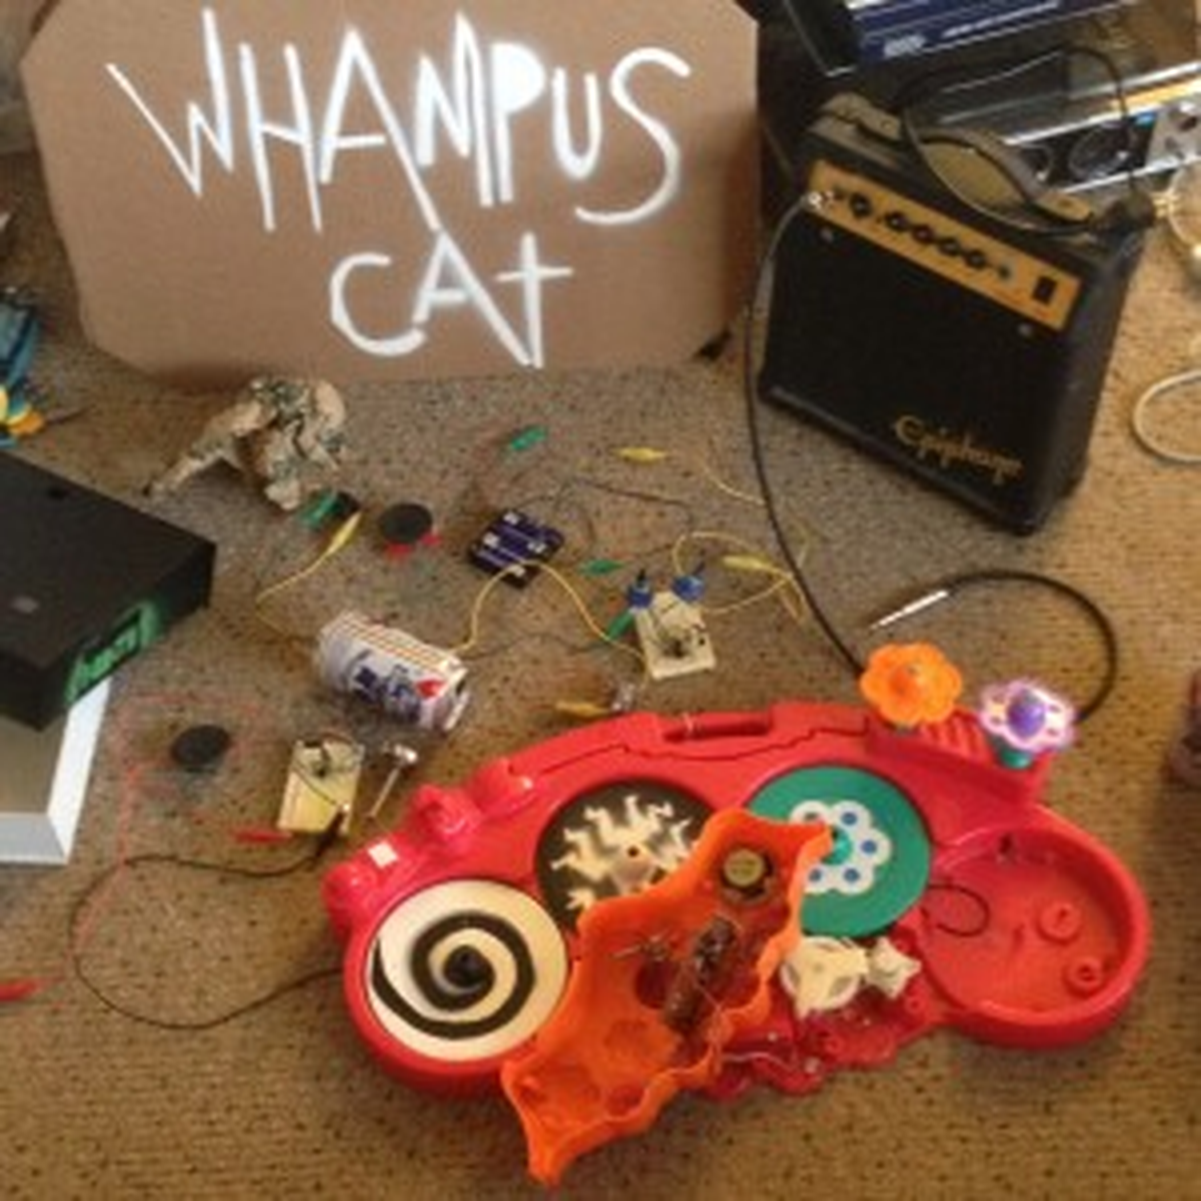 WhampusCAT